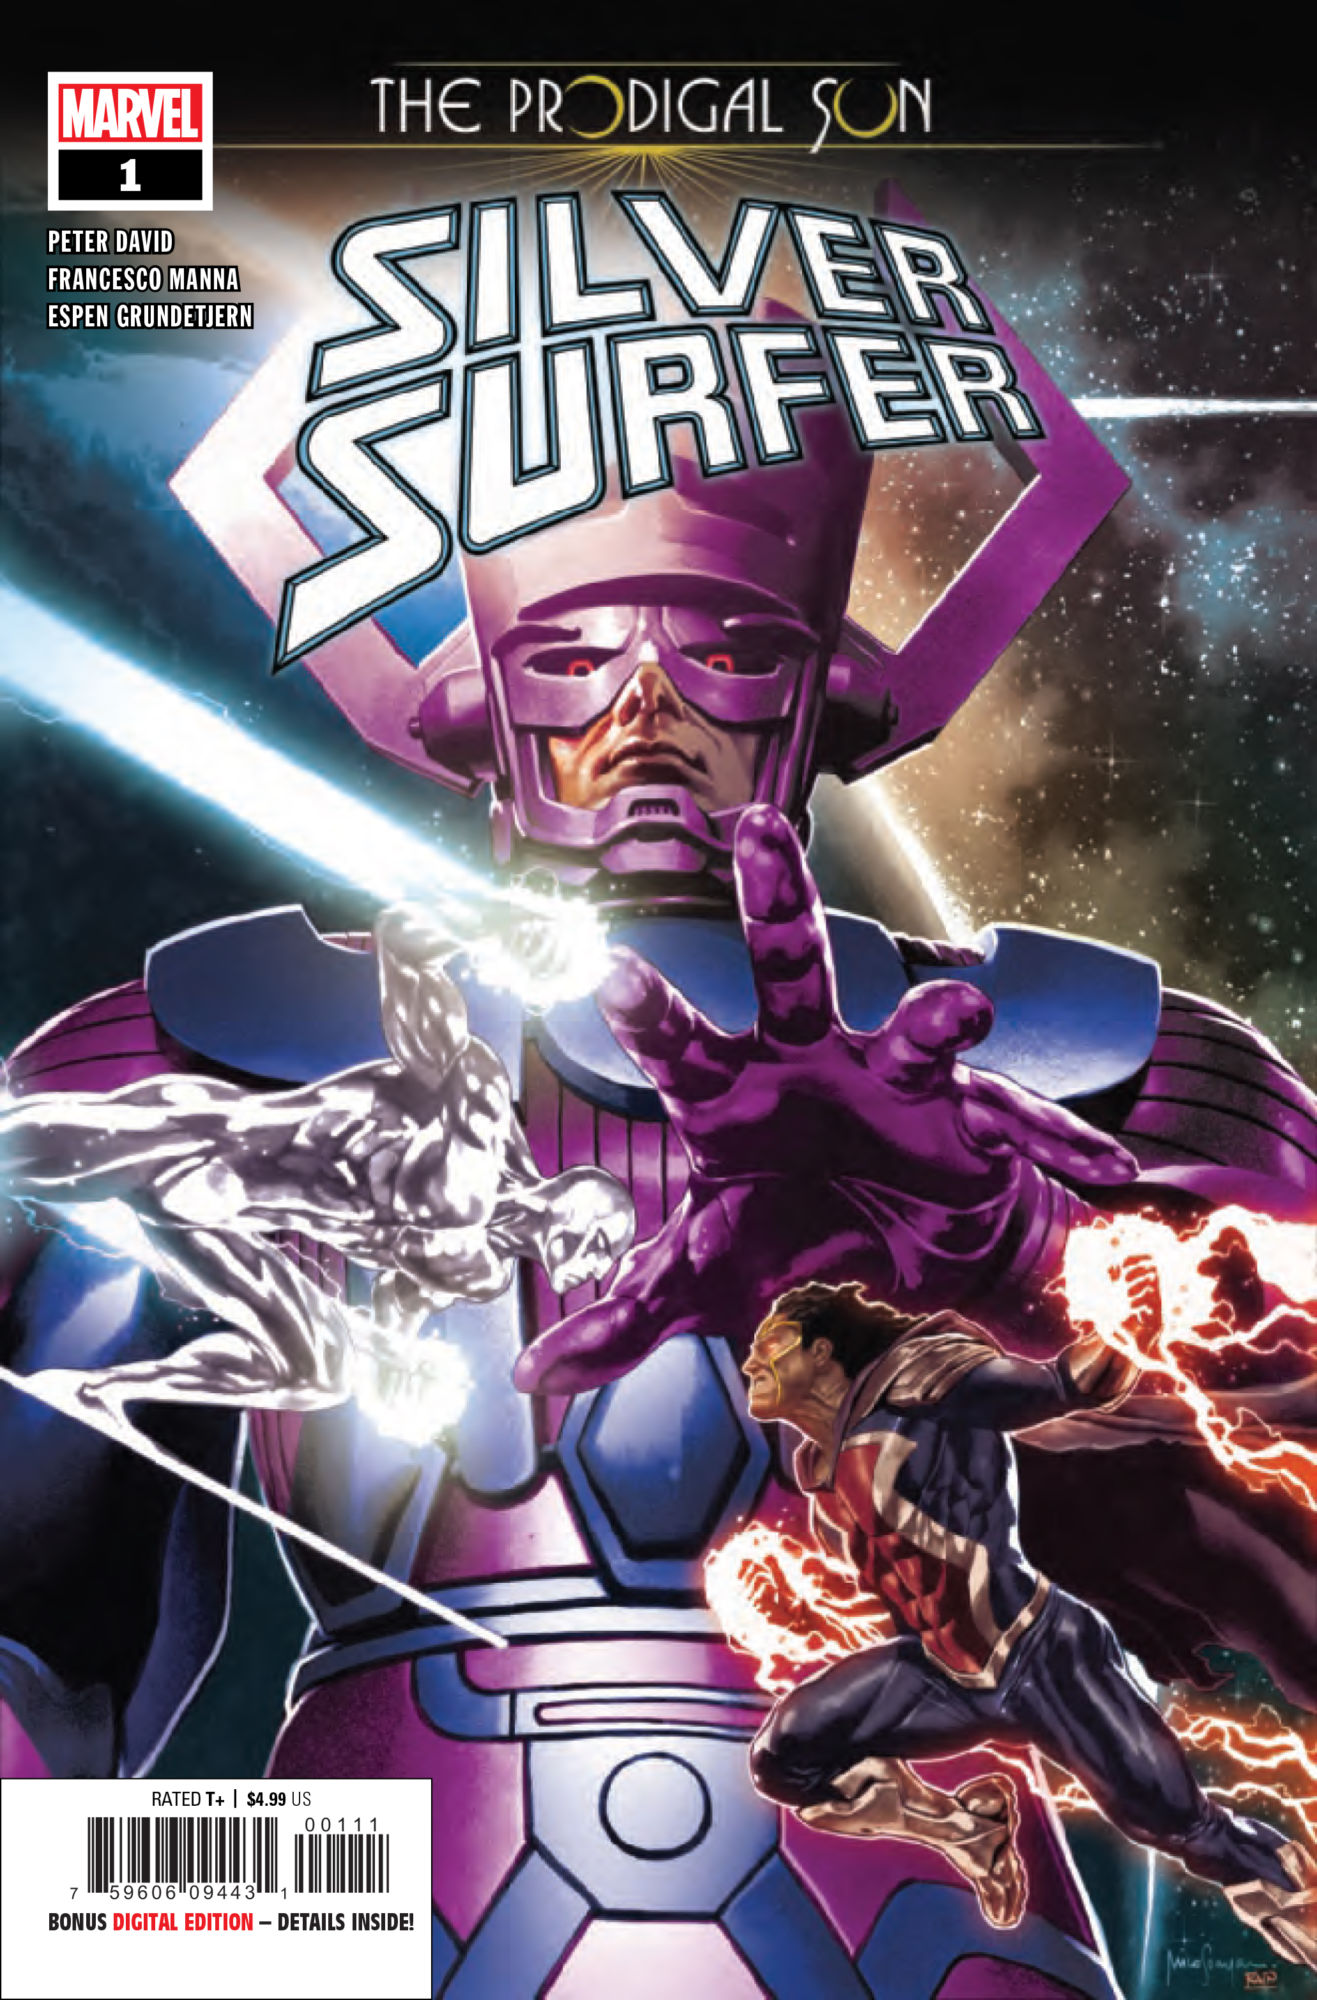 Feeding Time for Galactus in Silver Surfer: Prodigal Sun #1 [Preview]